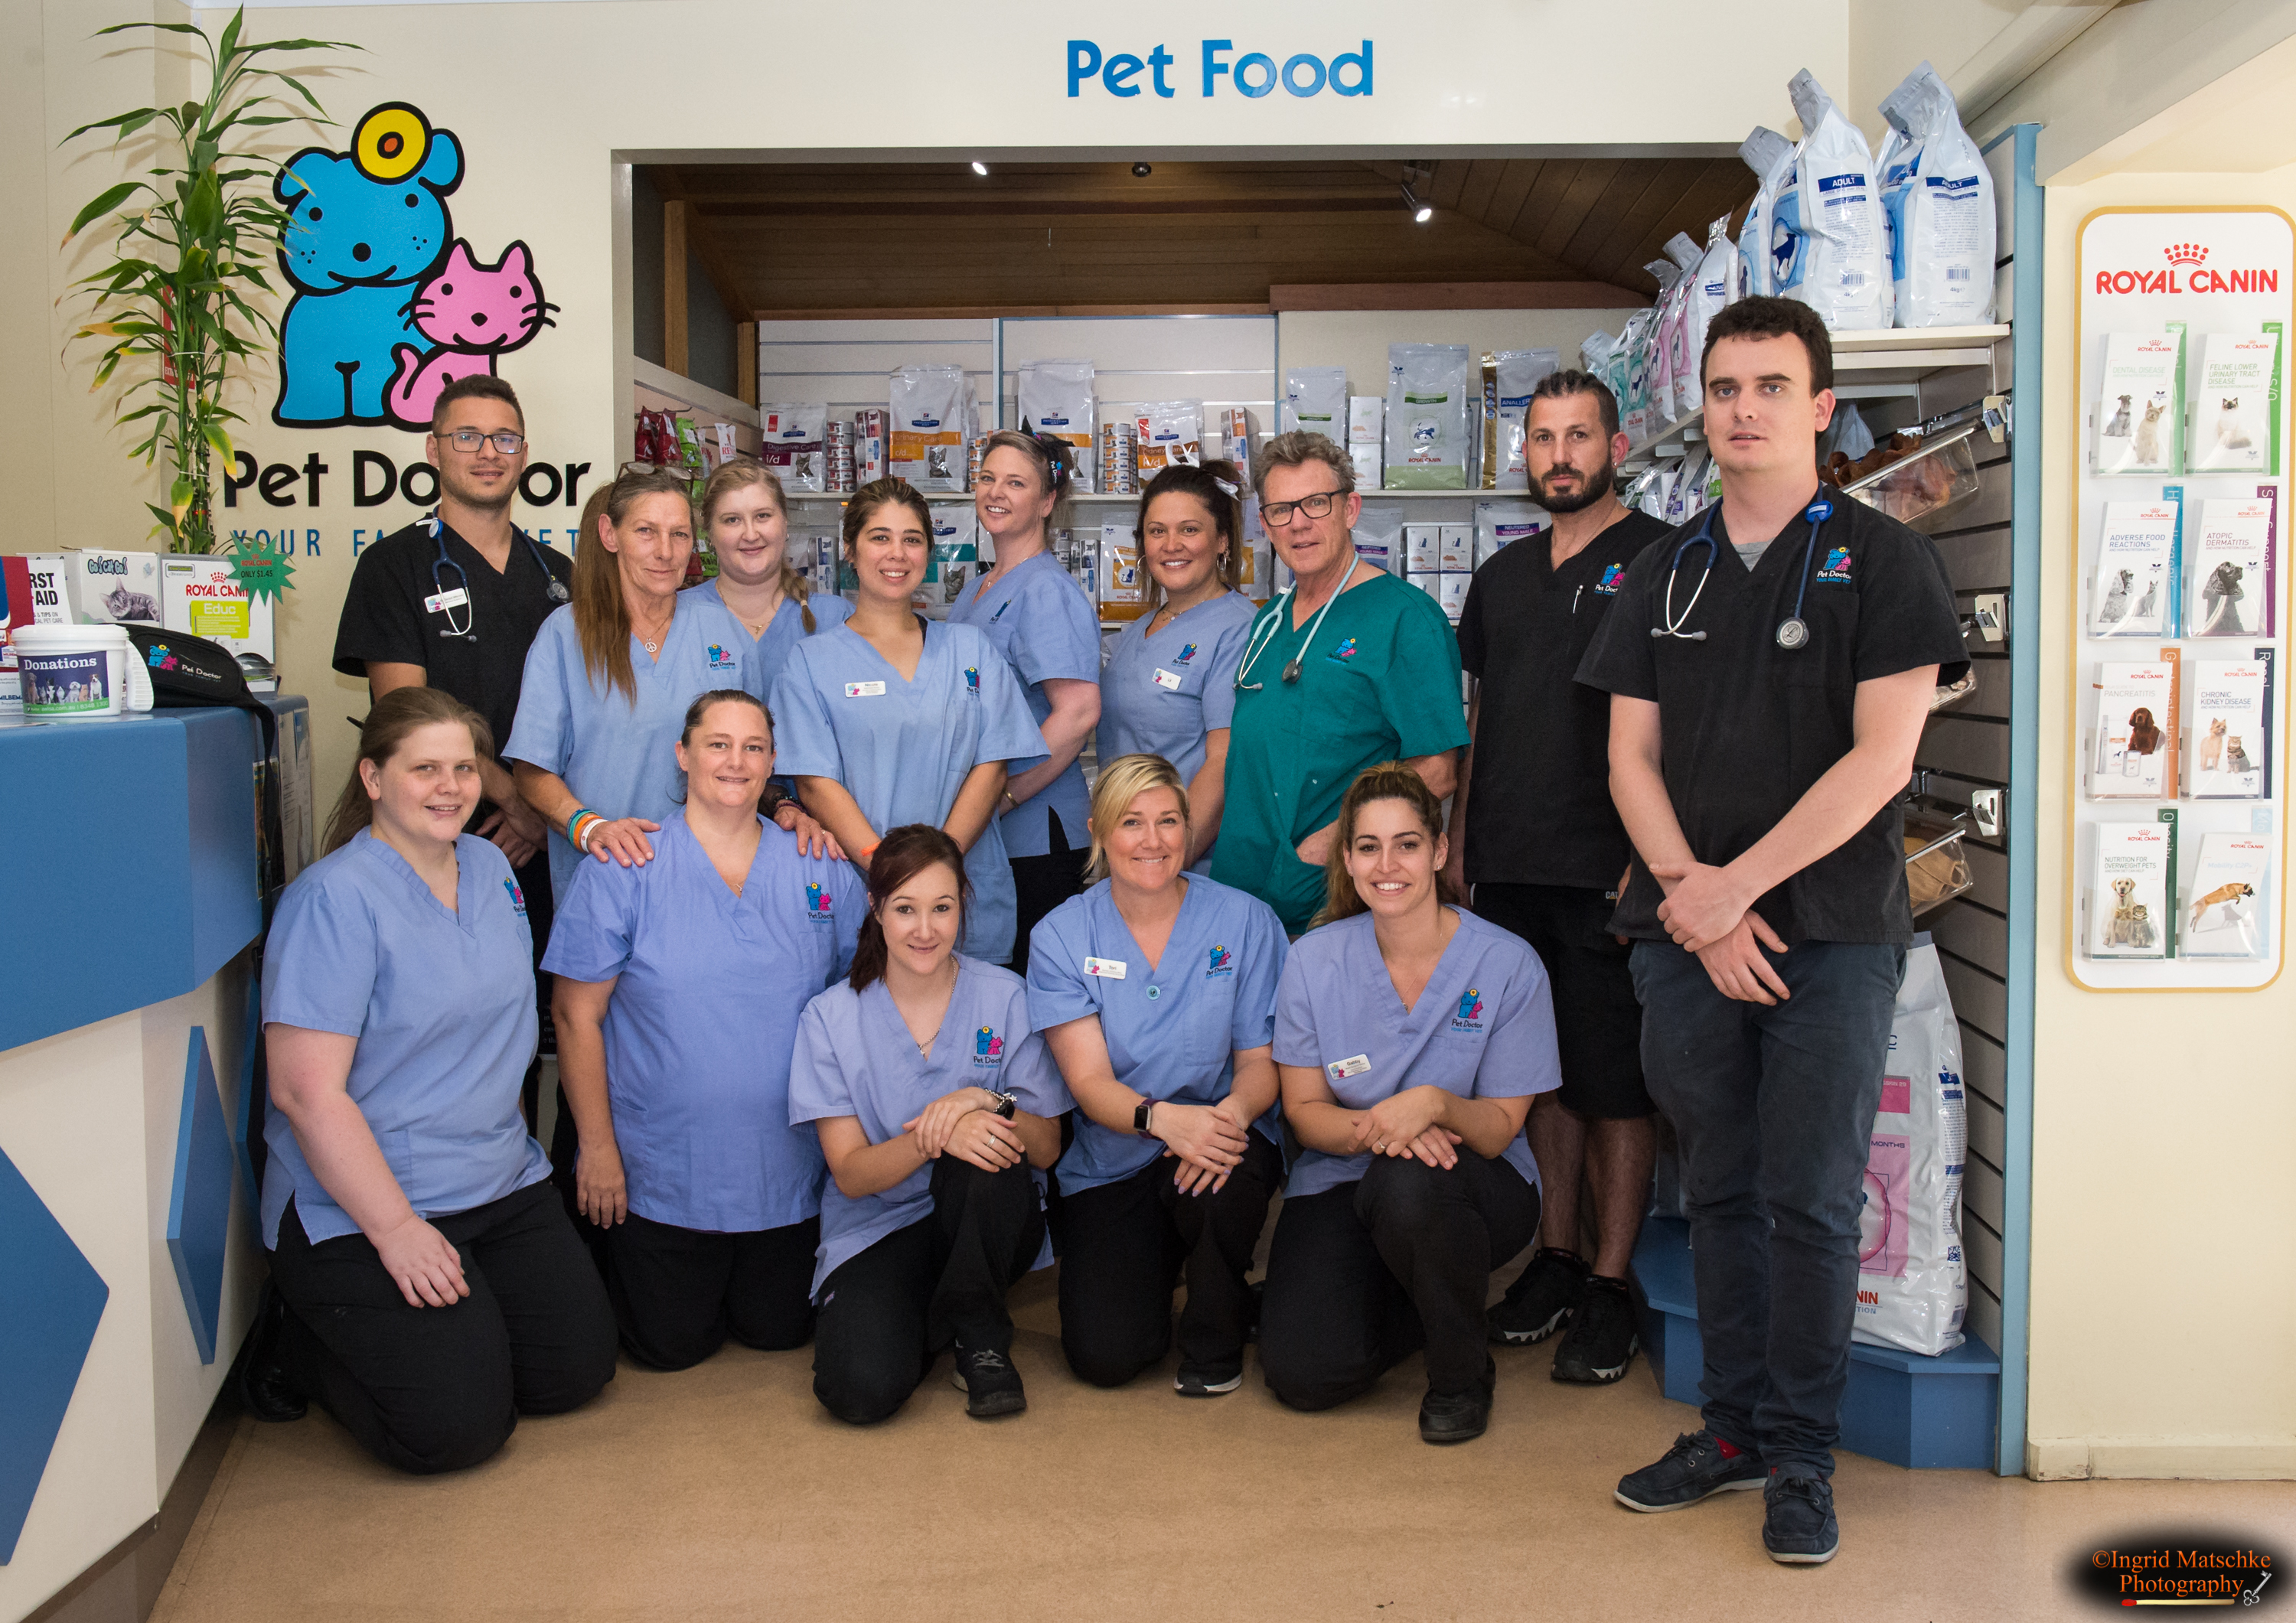 Pet Doctor team